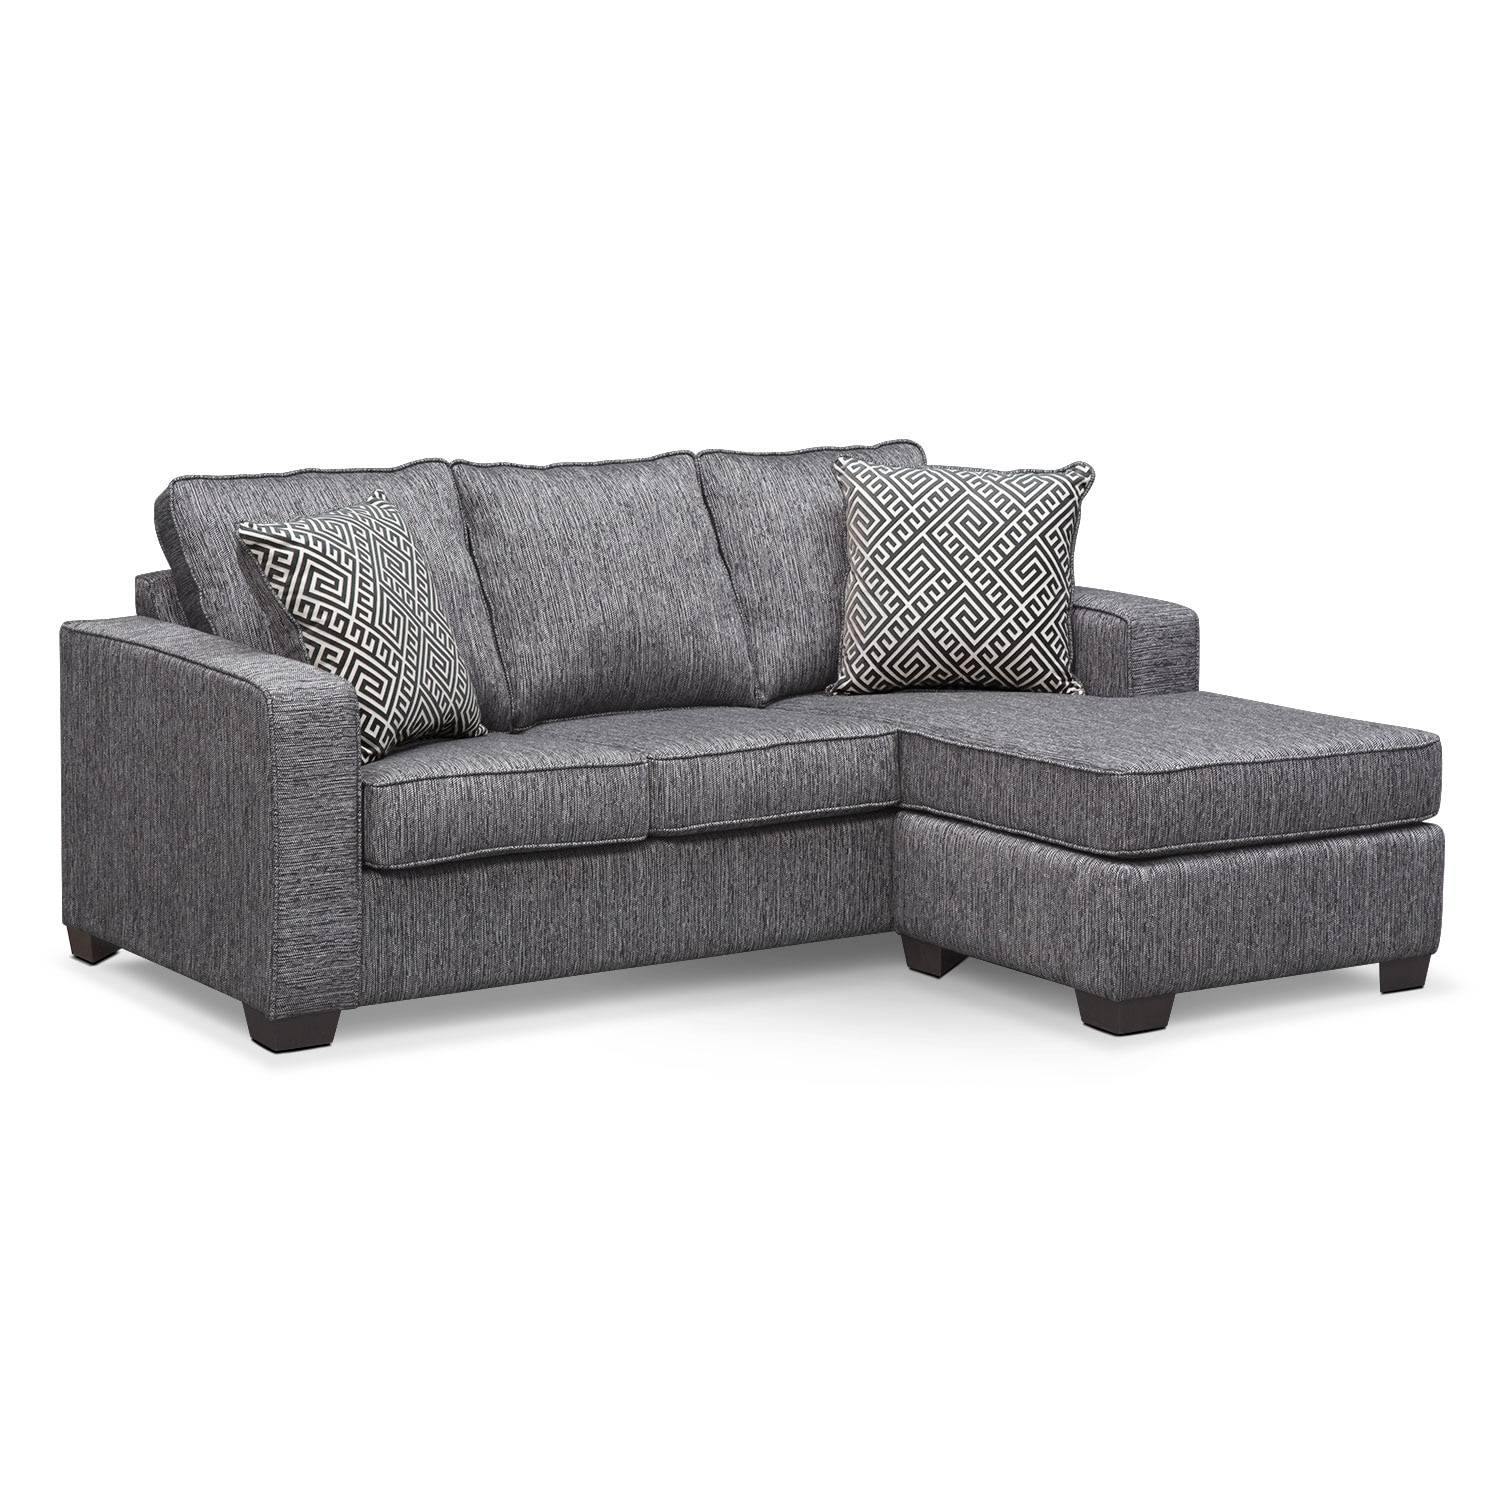 Sleeper Sofas | Value City Furniture | Value City Furniture in Sofas With Beds (Image 14 of 30)